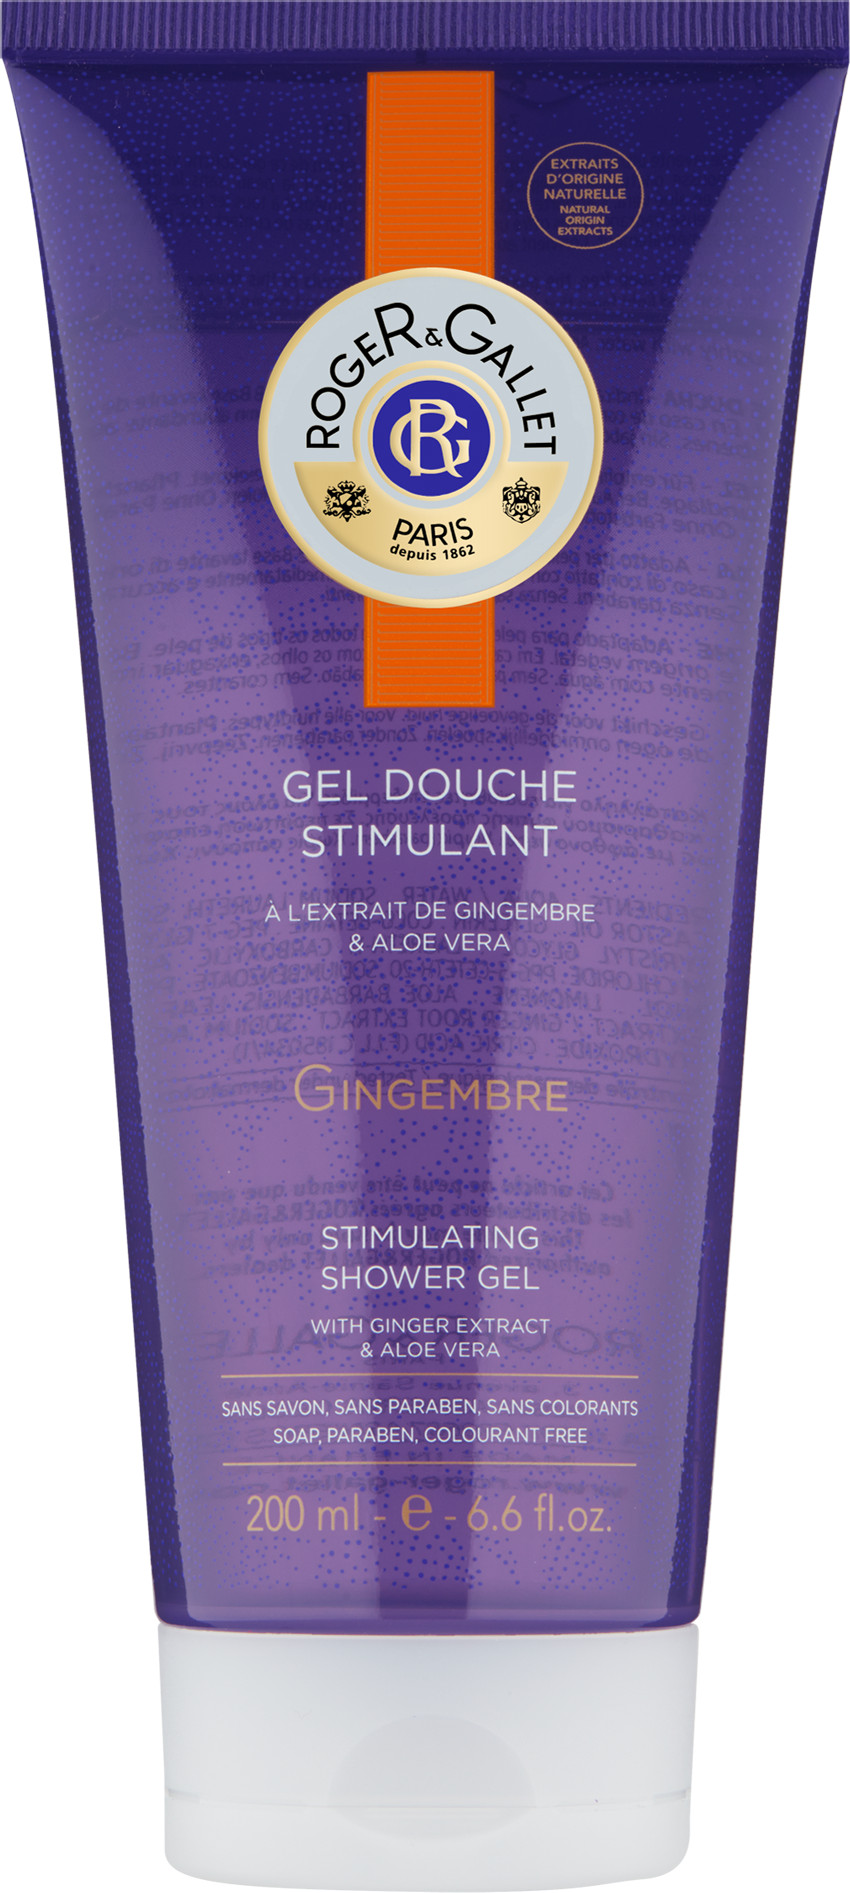 Gingembre (ginger) Shower Gel